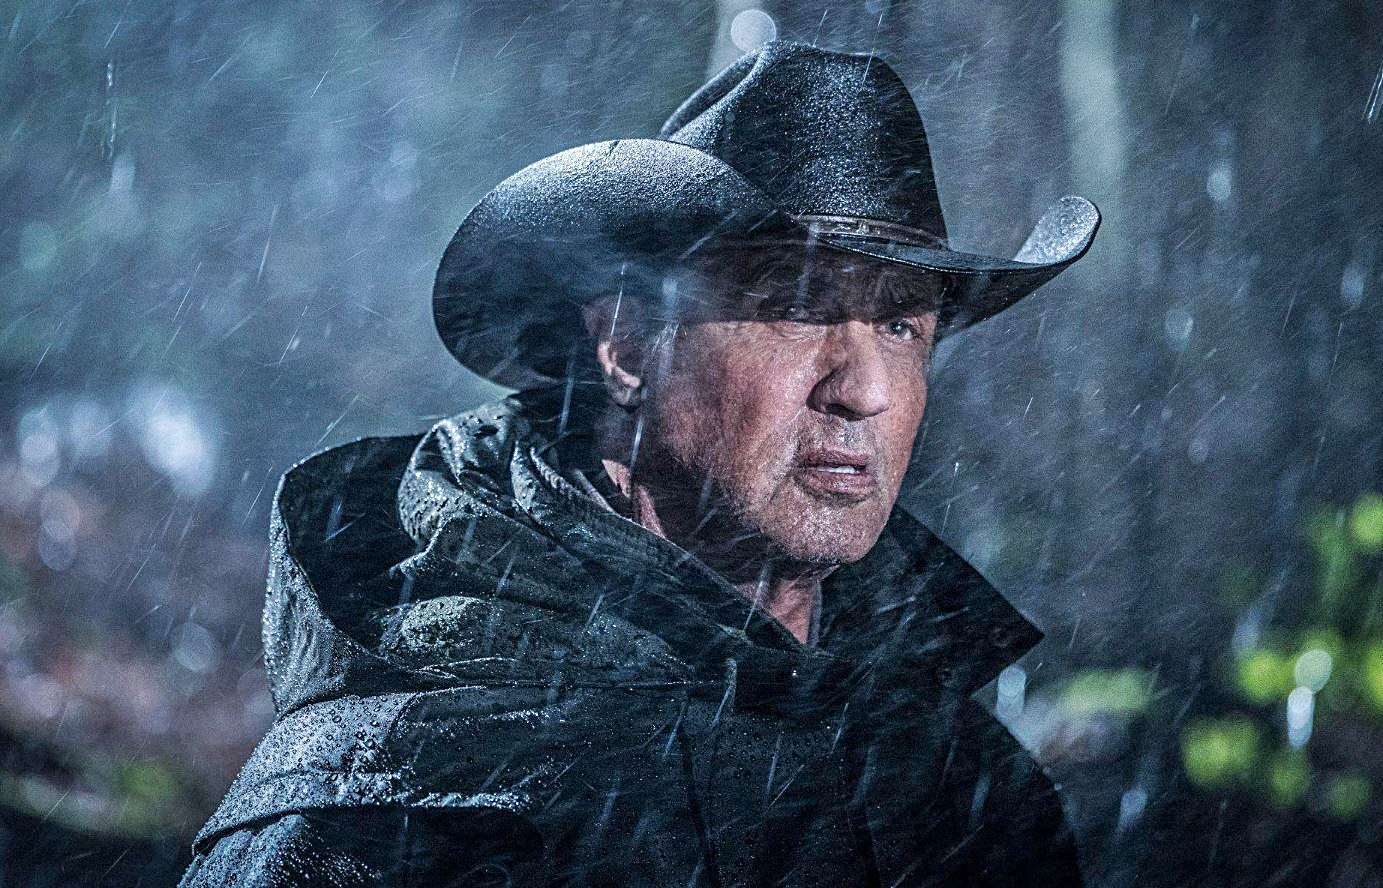 Sly Stallone Brings the Action in First Rambo: Last Blood Trailer!